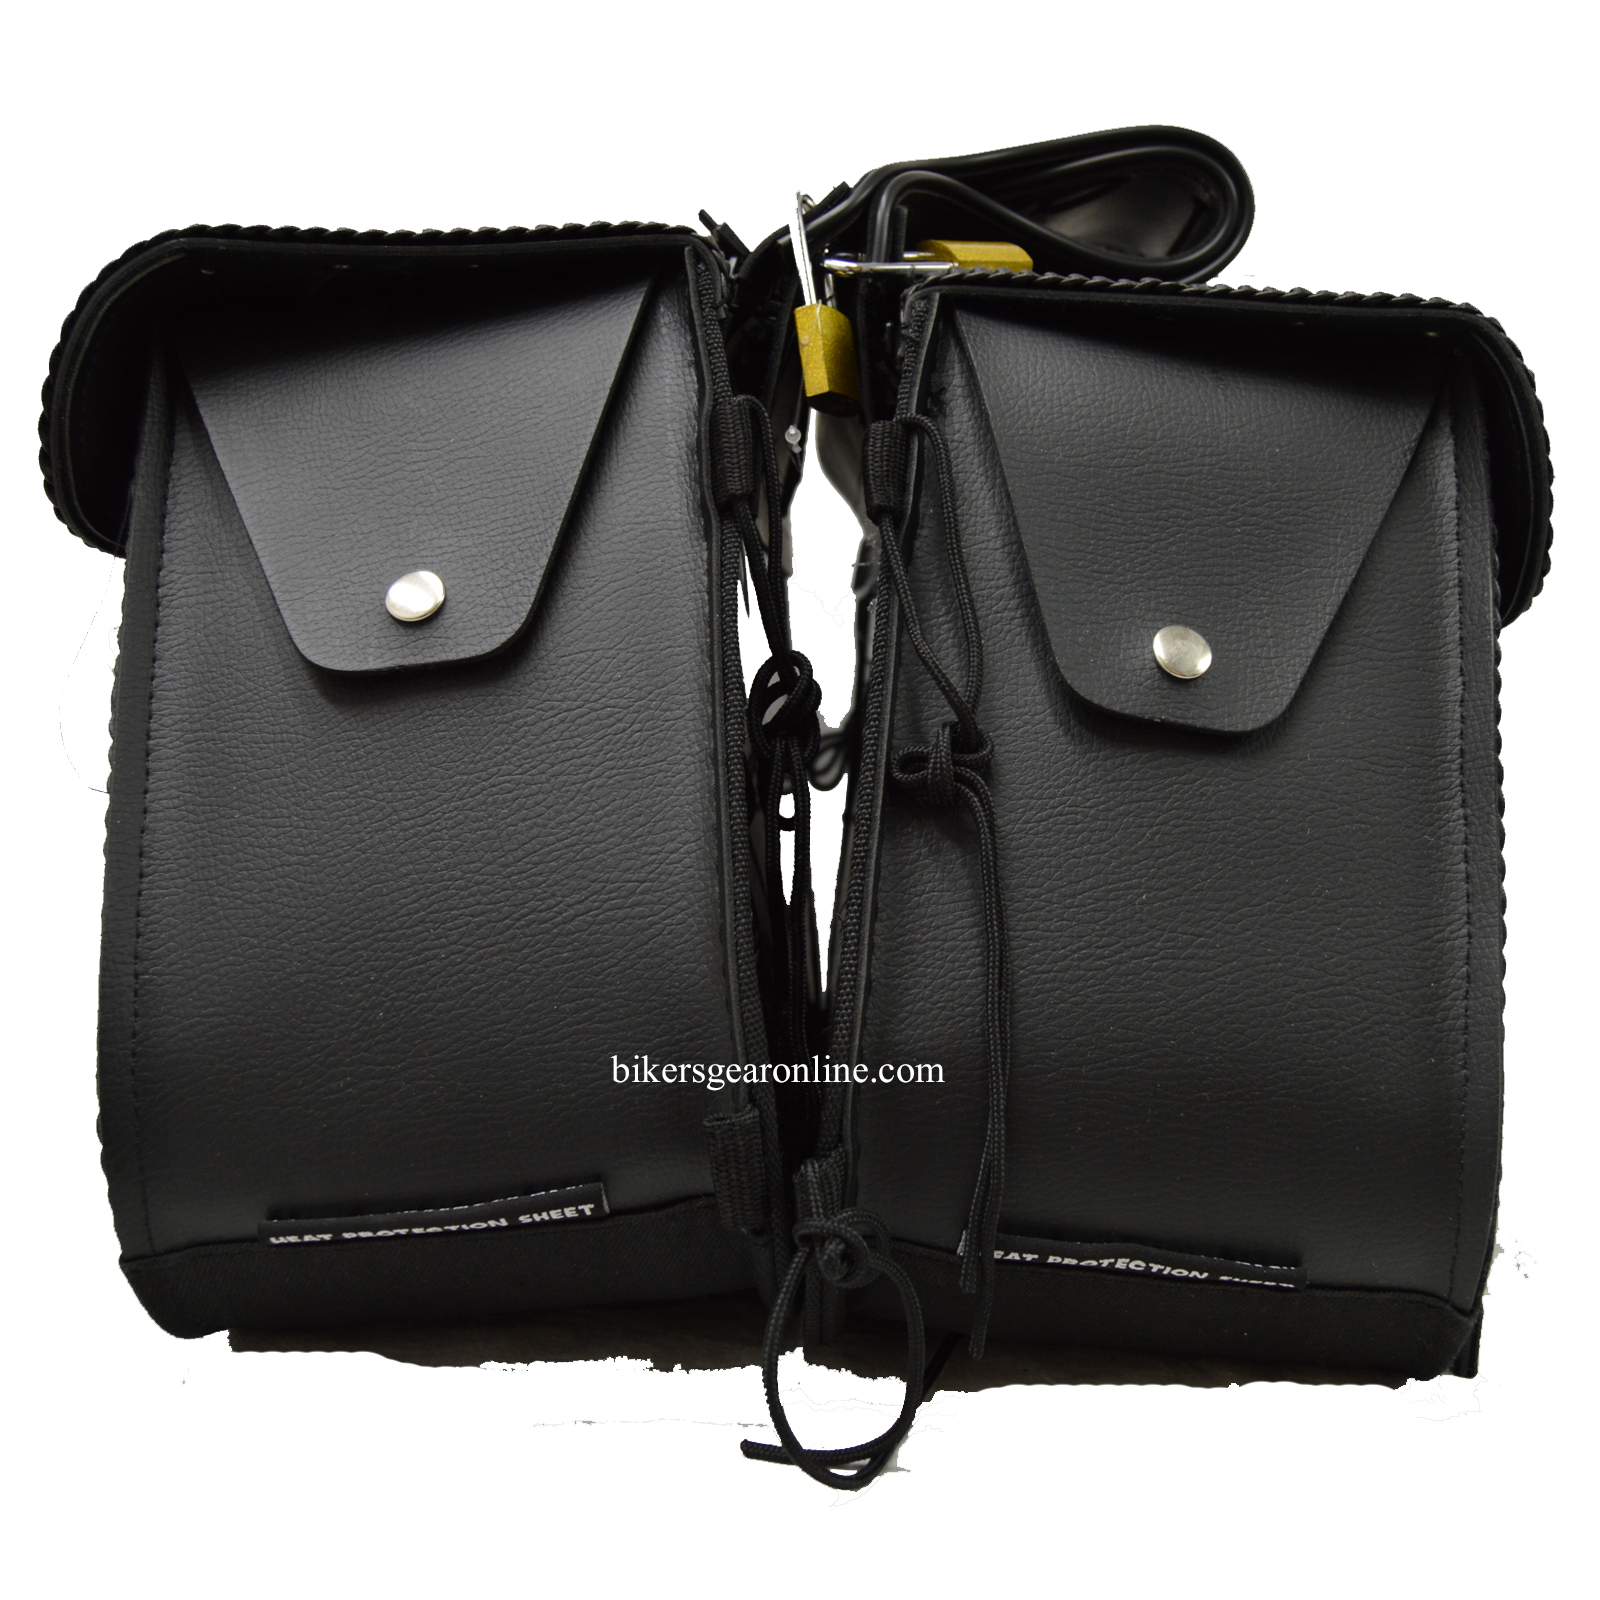 saddle bag bike